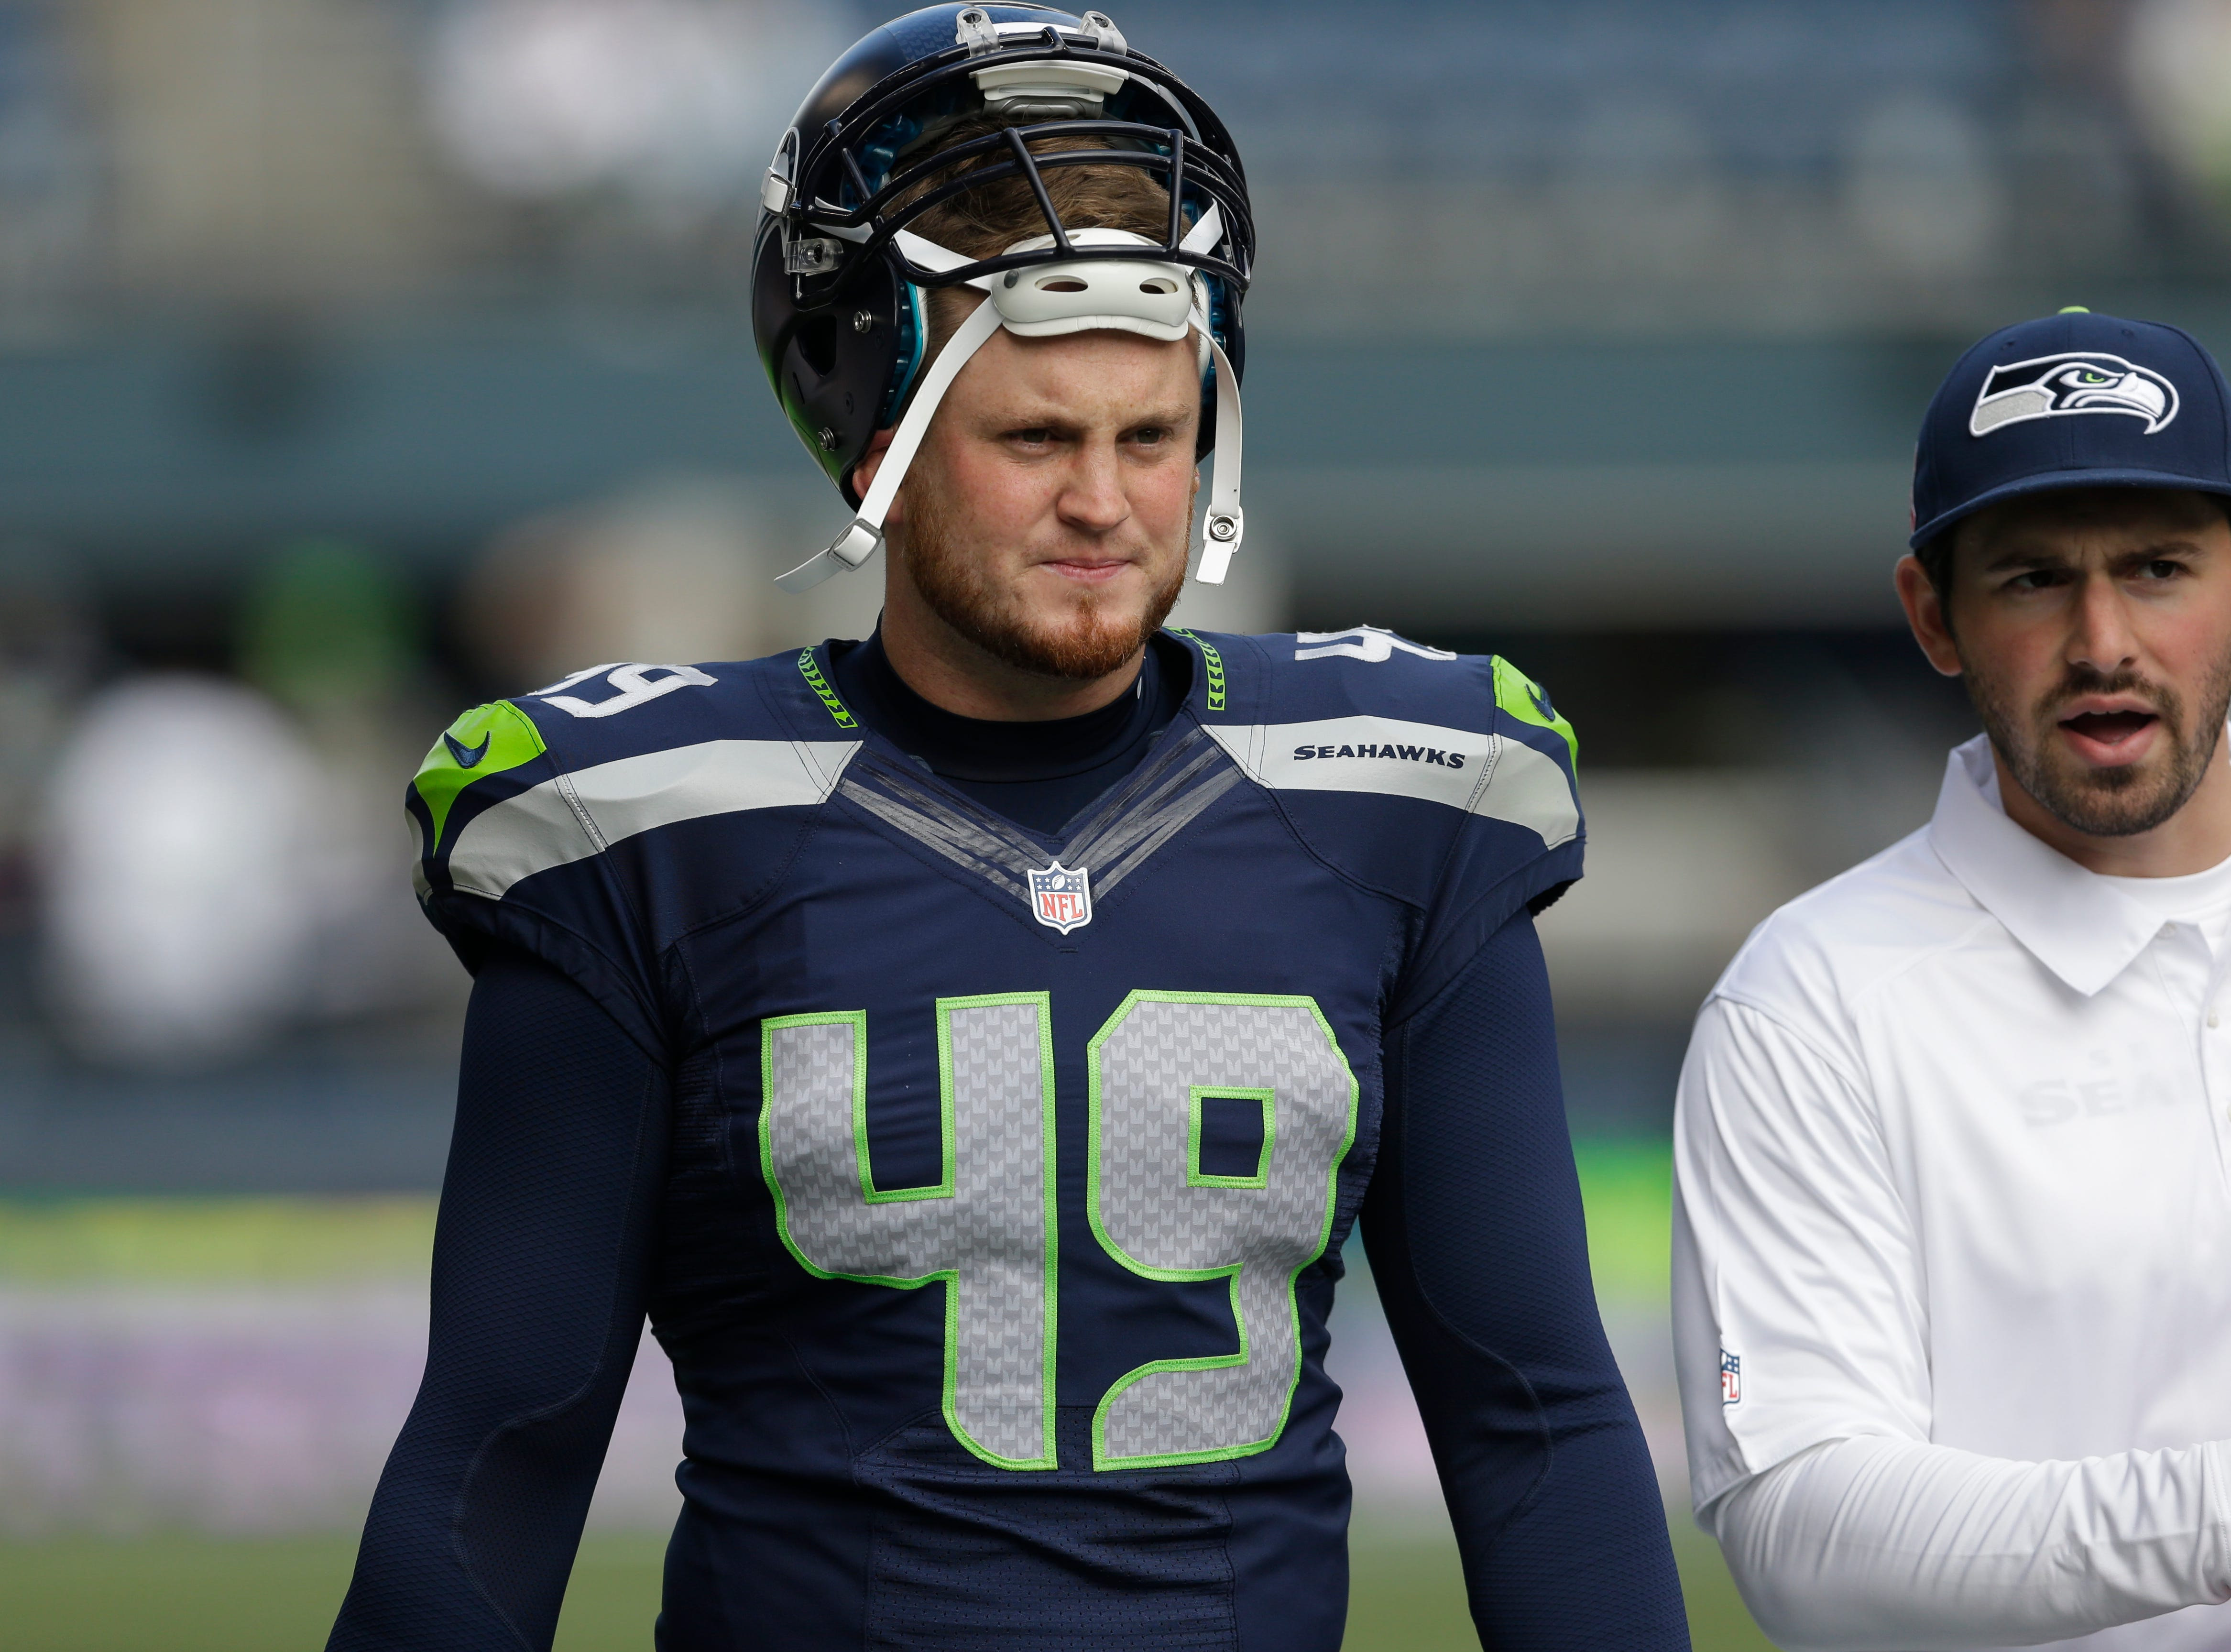 Seattle Seahawks' Clint Gresham stands on the sidelines before an NFL football game agains the Tennessee Titans, Sunday, Oct. 13, 2013, in Seattle. (AP Photo/Elaine Thompson)